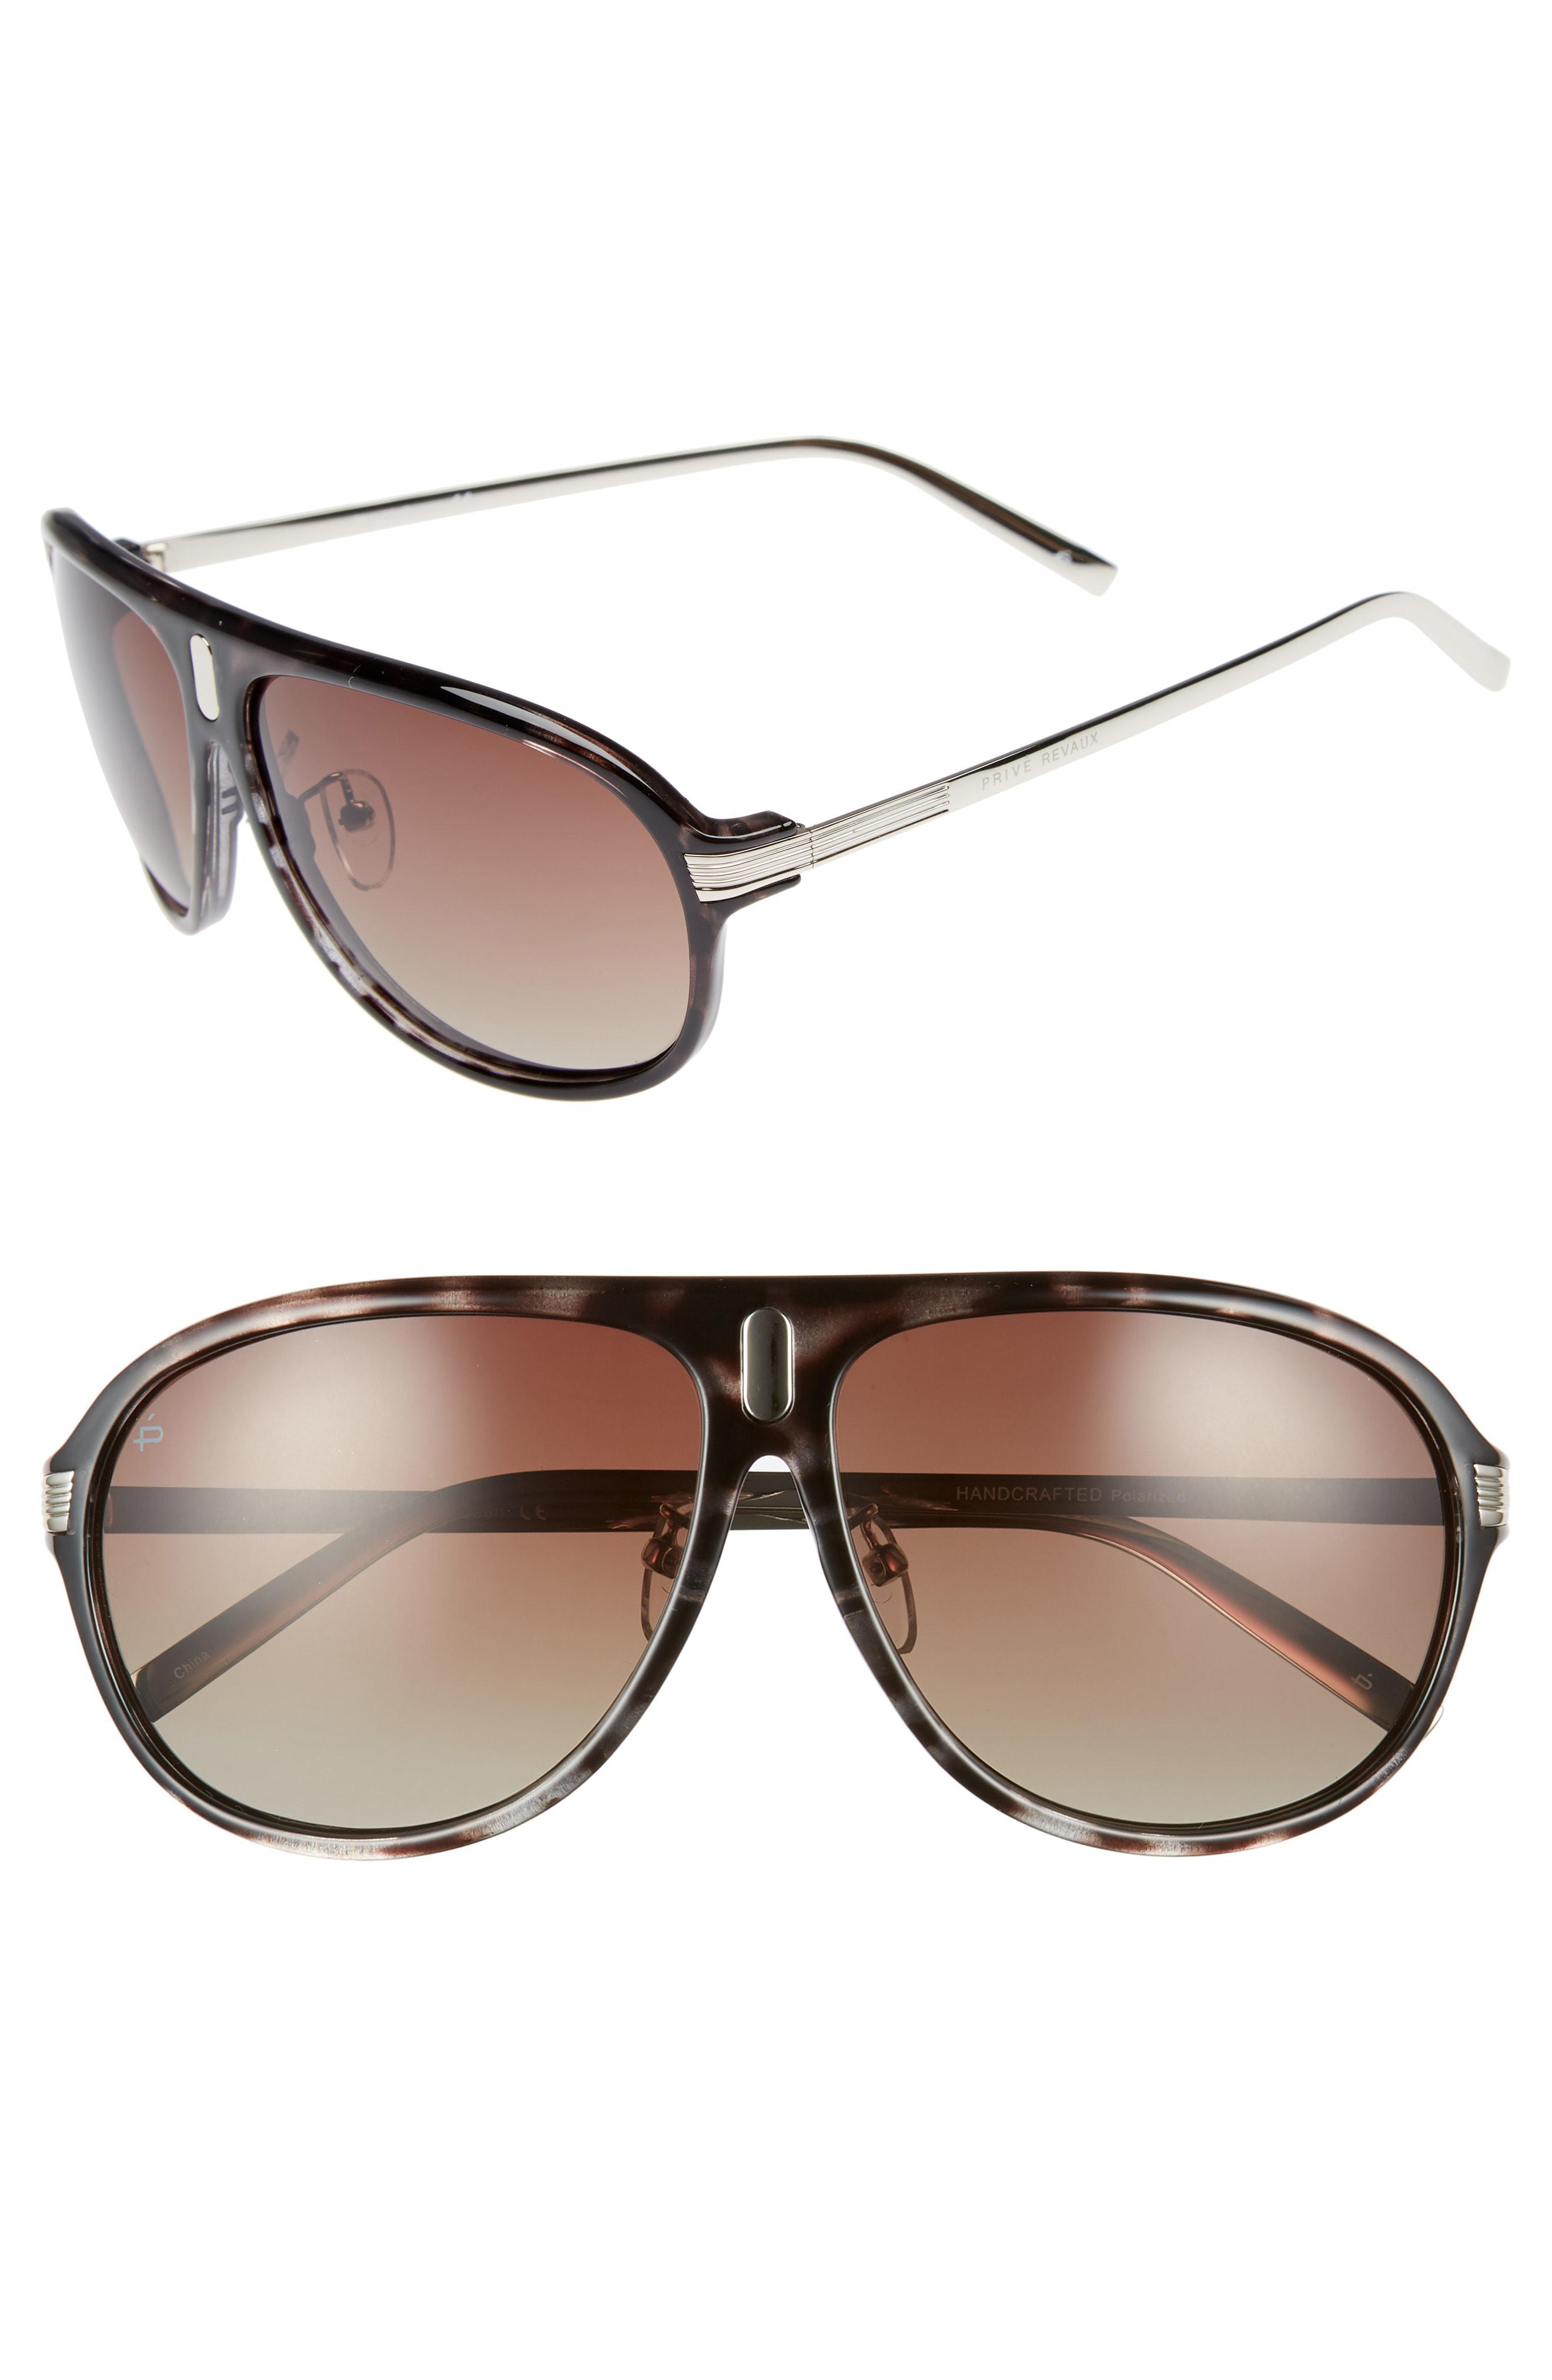 6db0384ad43ff6 Privé Revaux. Men s Gray The Mcqueen 62mm Polarized Aviator Sunglasses.  30  From Nordstrom. Free shipping ...